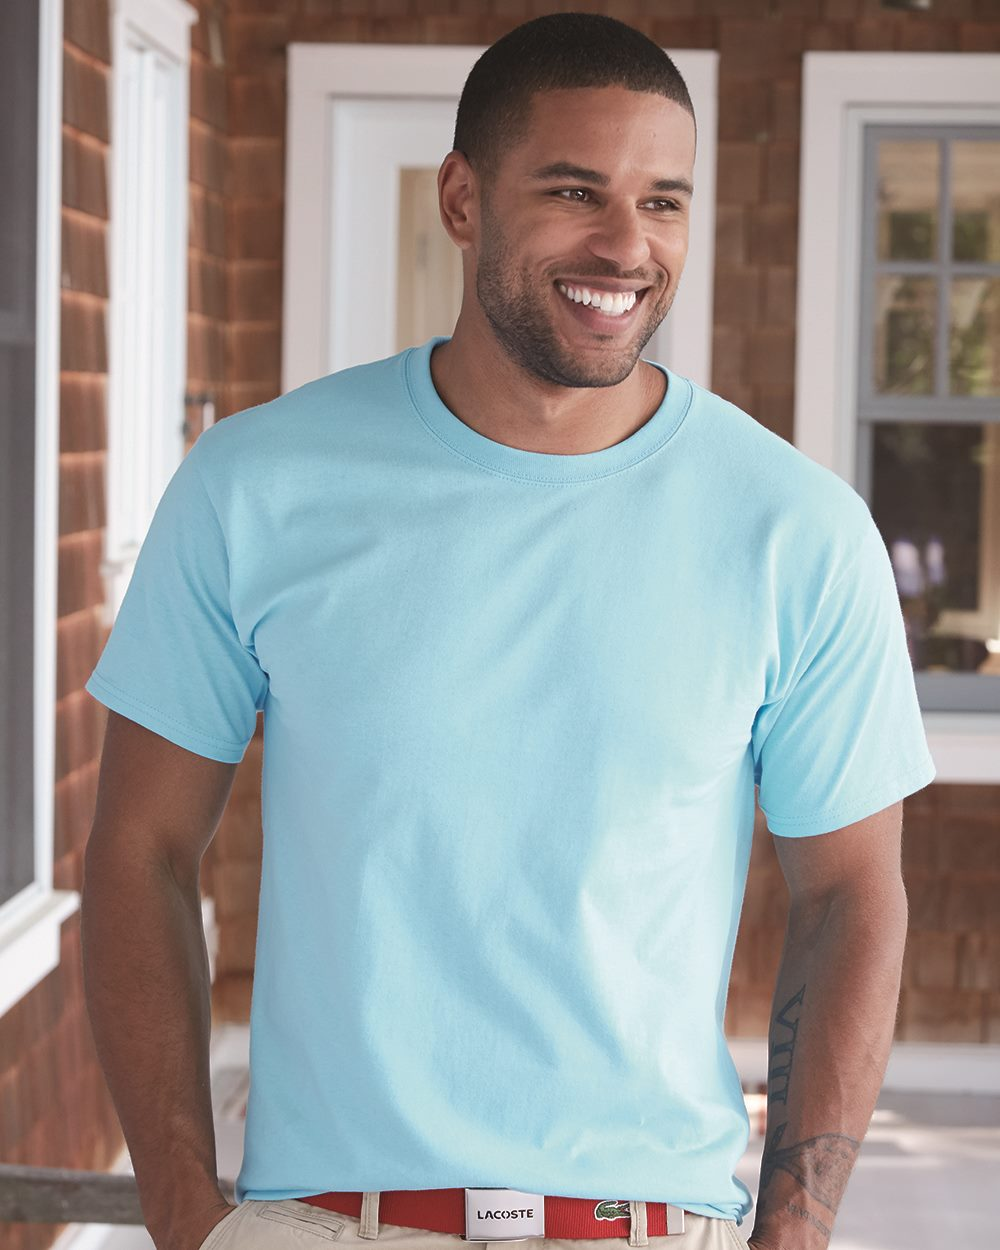 Hanes Tagless T-shirt - 5250                        Starting at $3.00 - Blank - 43 Colors